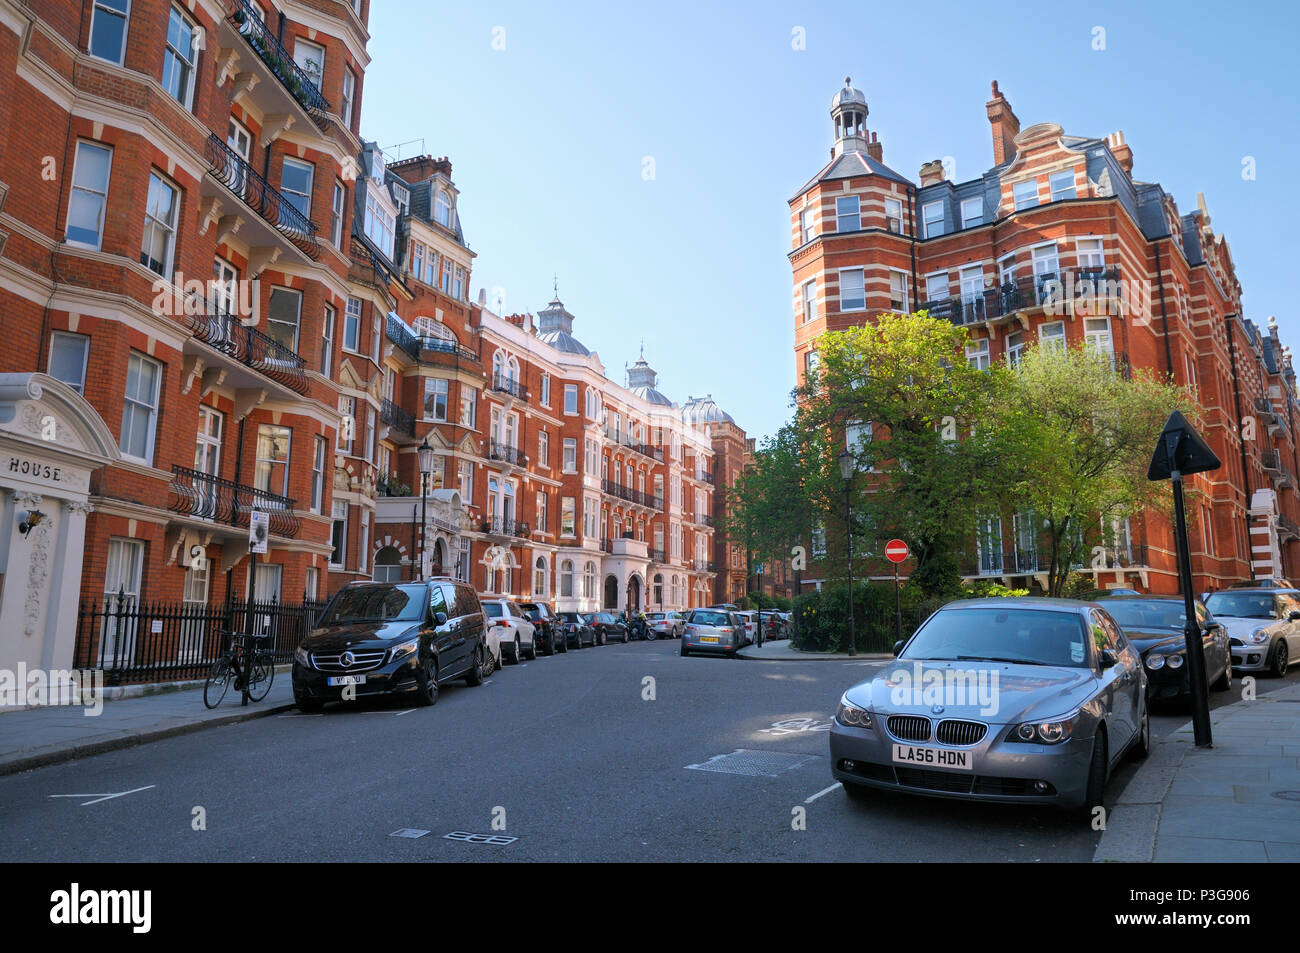 Elegant red brick mansion blocks in Kensington Court, Royal Borough of Kensington and Chelsea, London W8, England, UK - Stock Image